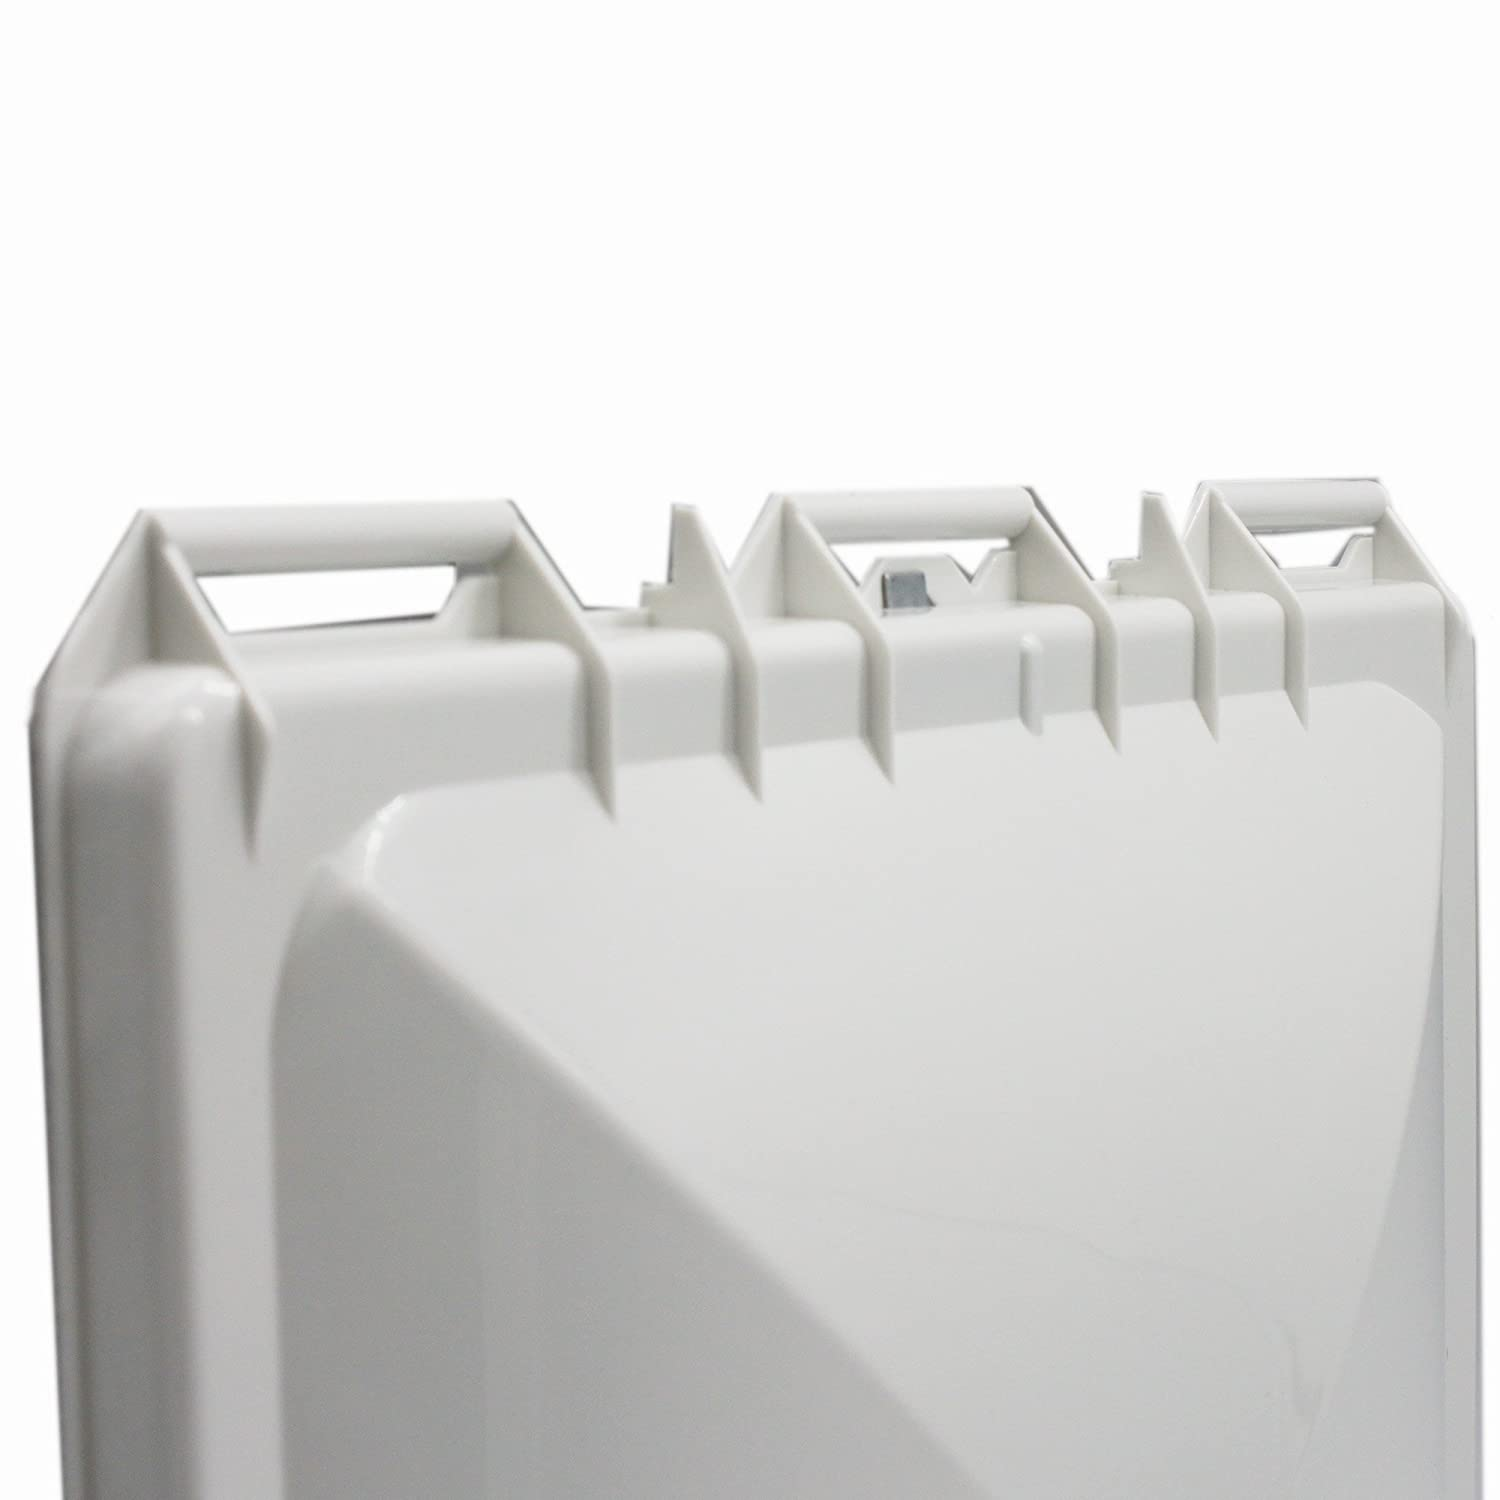 X-Haibei RV Roof Vent Lid Cover Replacment Plastic White 13x13x2INCH for Camper Trailer